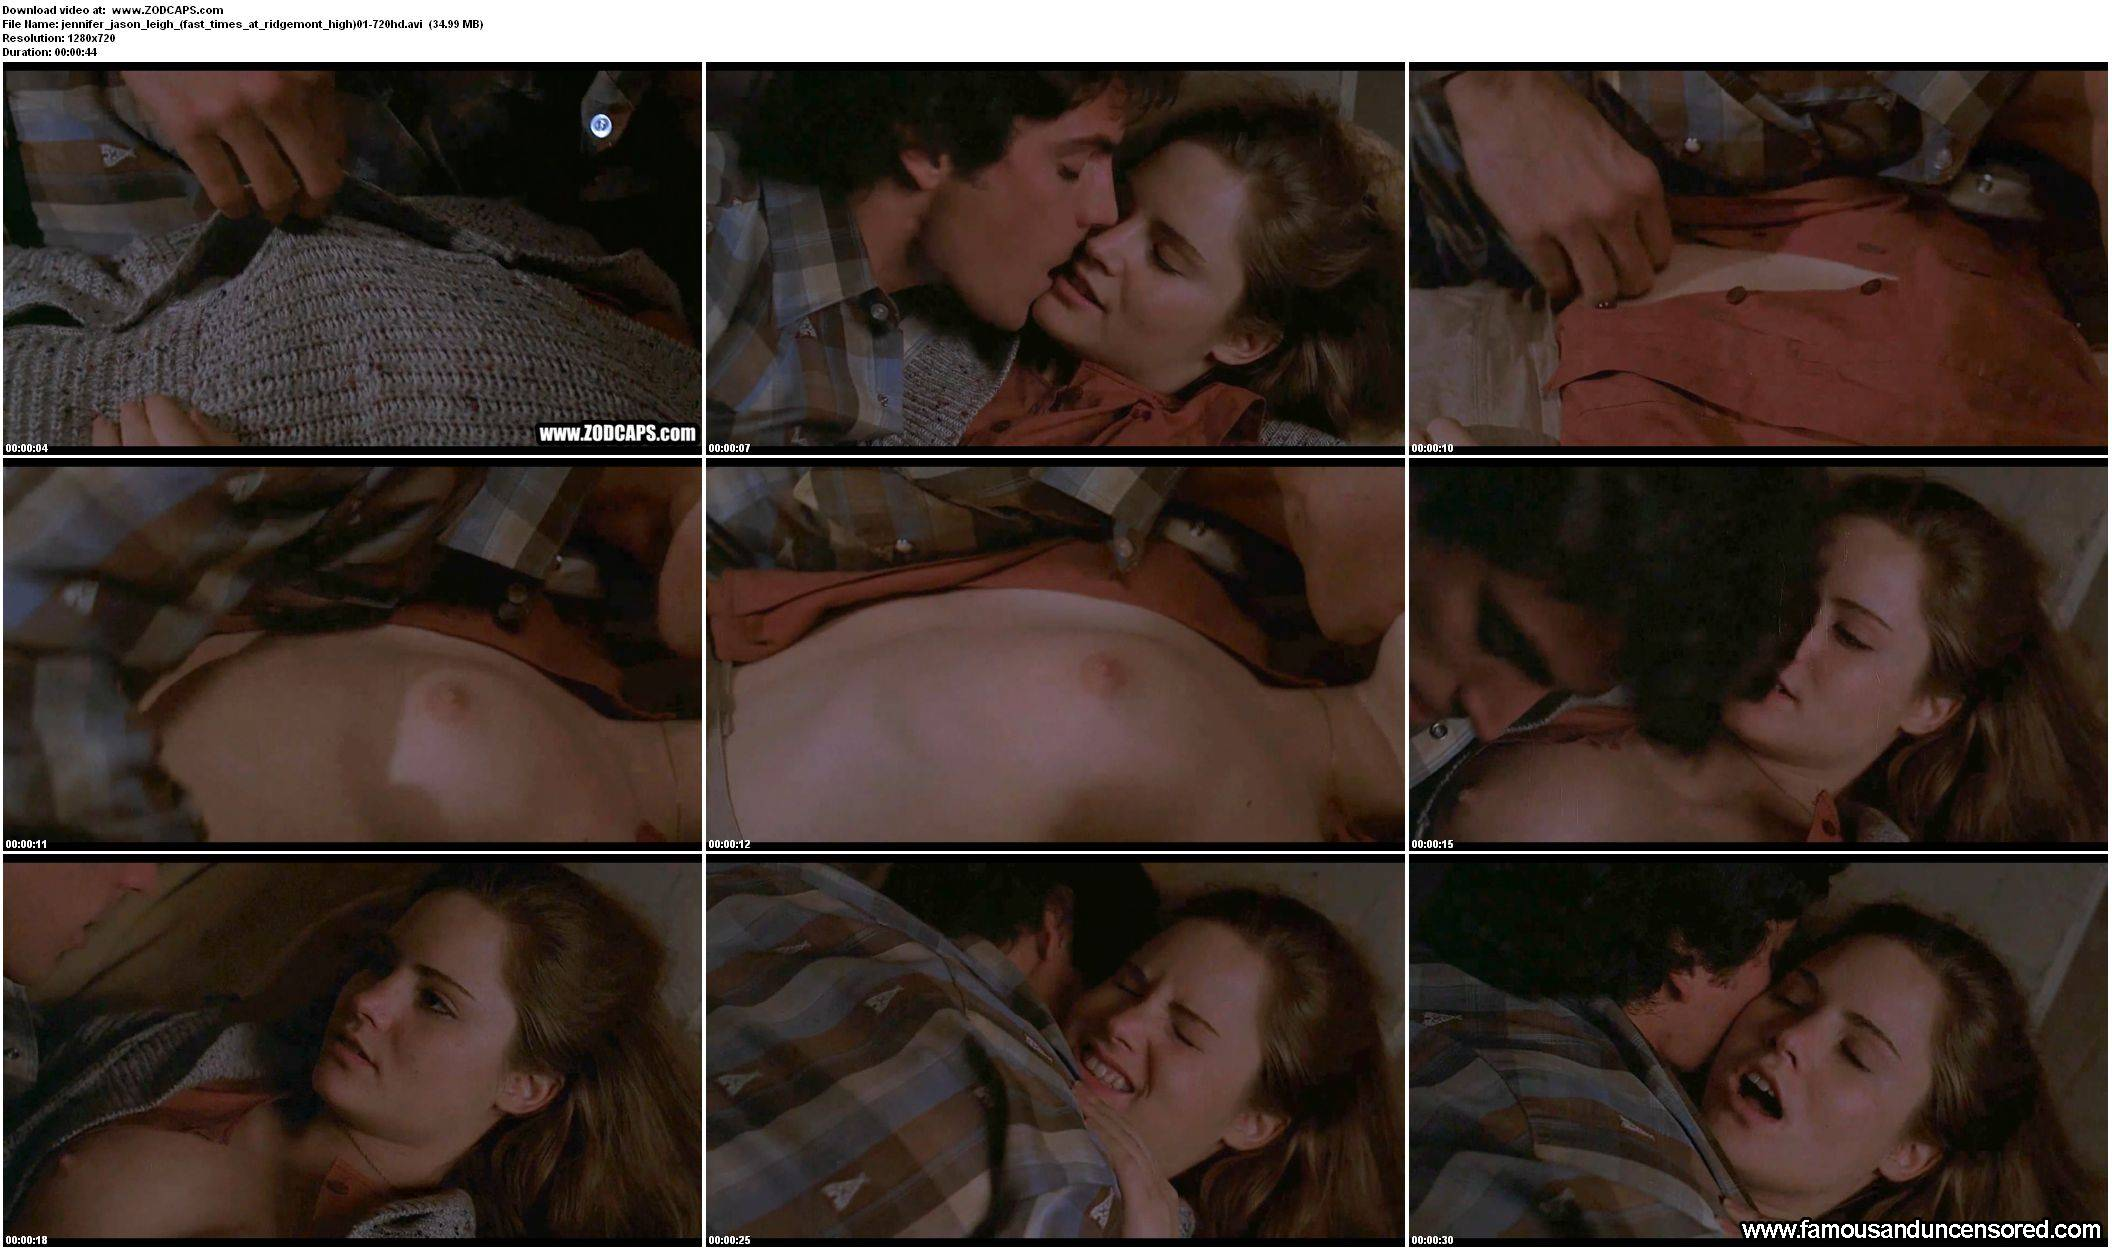 girl-hogtied-jennifer-jason-leigh-fast-times-nude-for-sexually-active